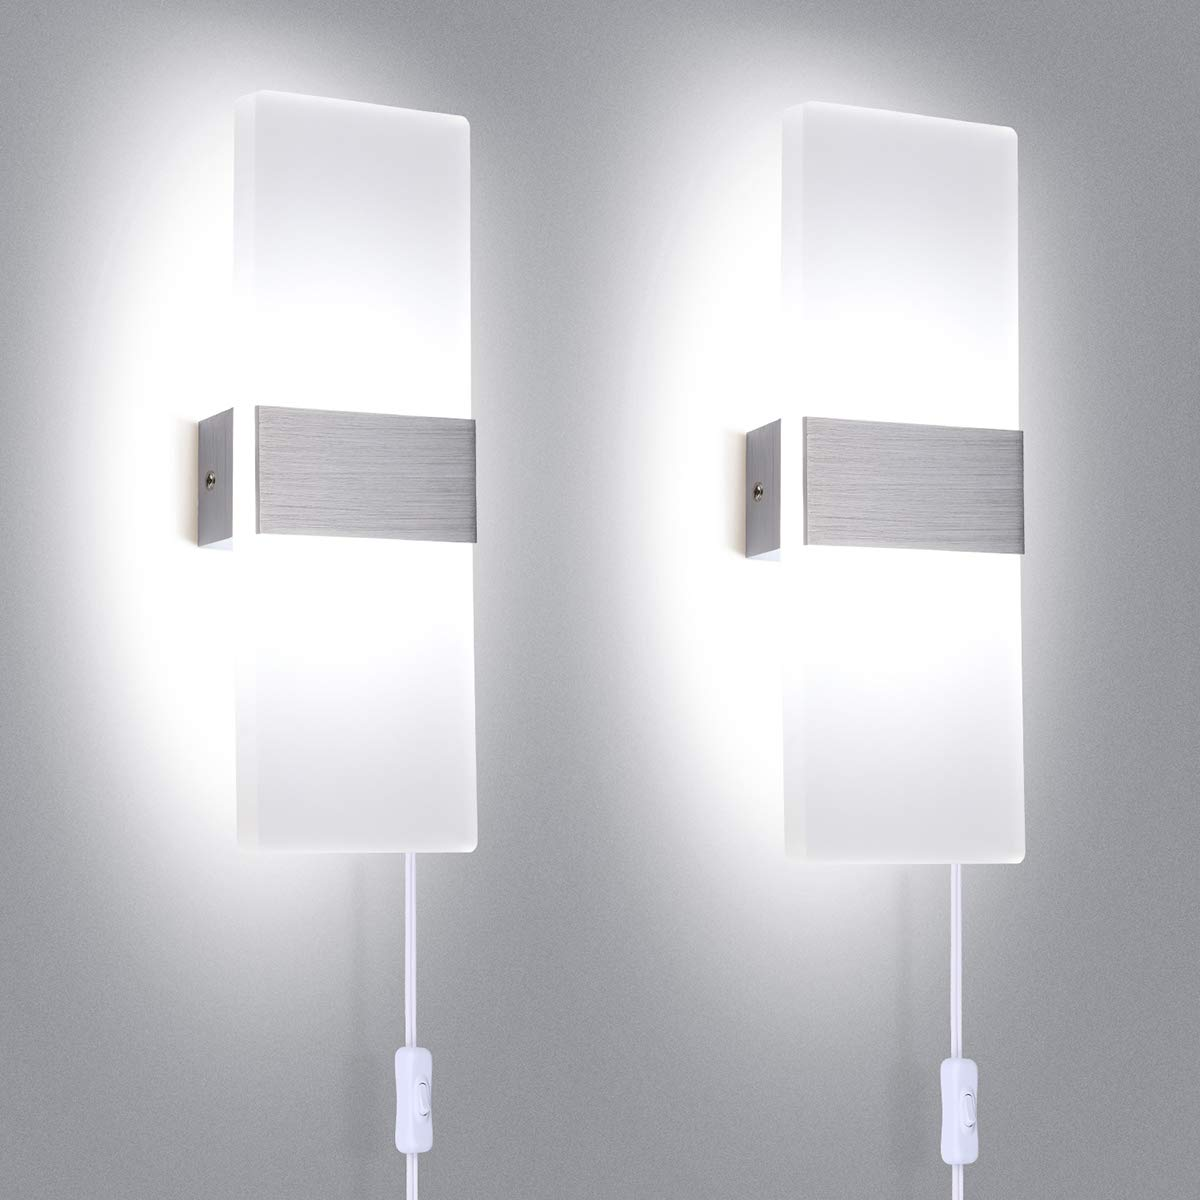 TRLIFE Modern Wall Sconces Set of 2, Plug in Wall Sconces 12W 6000K Cool White Acrylic Wall Sconce Lighting with On/Off Switch